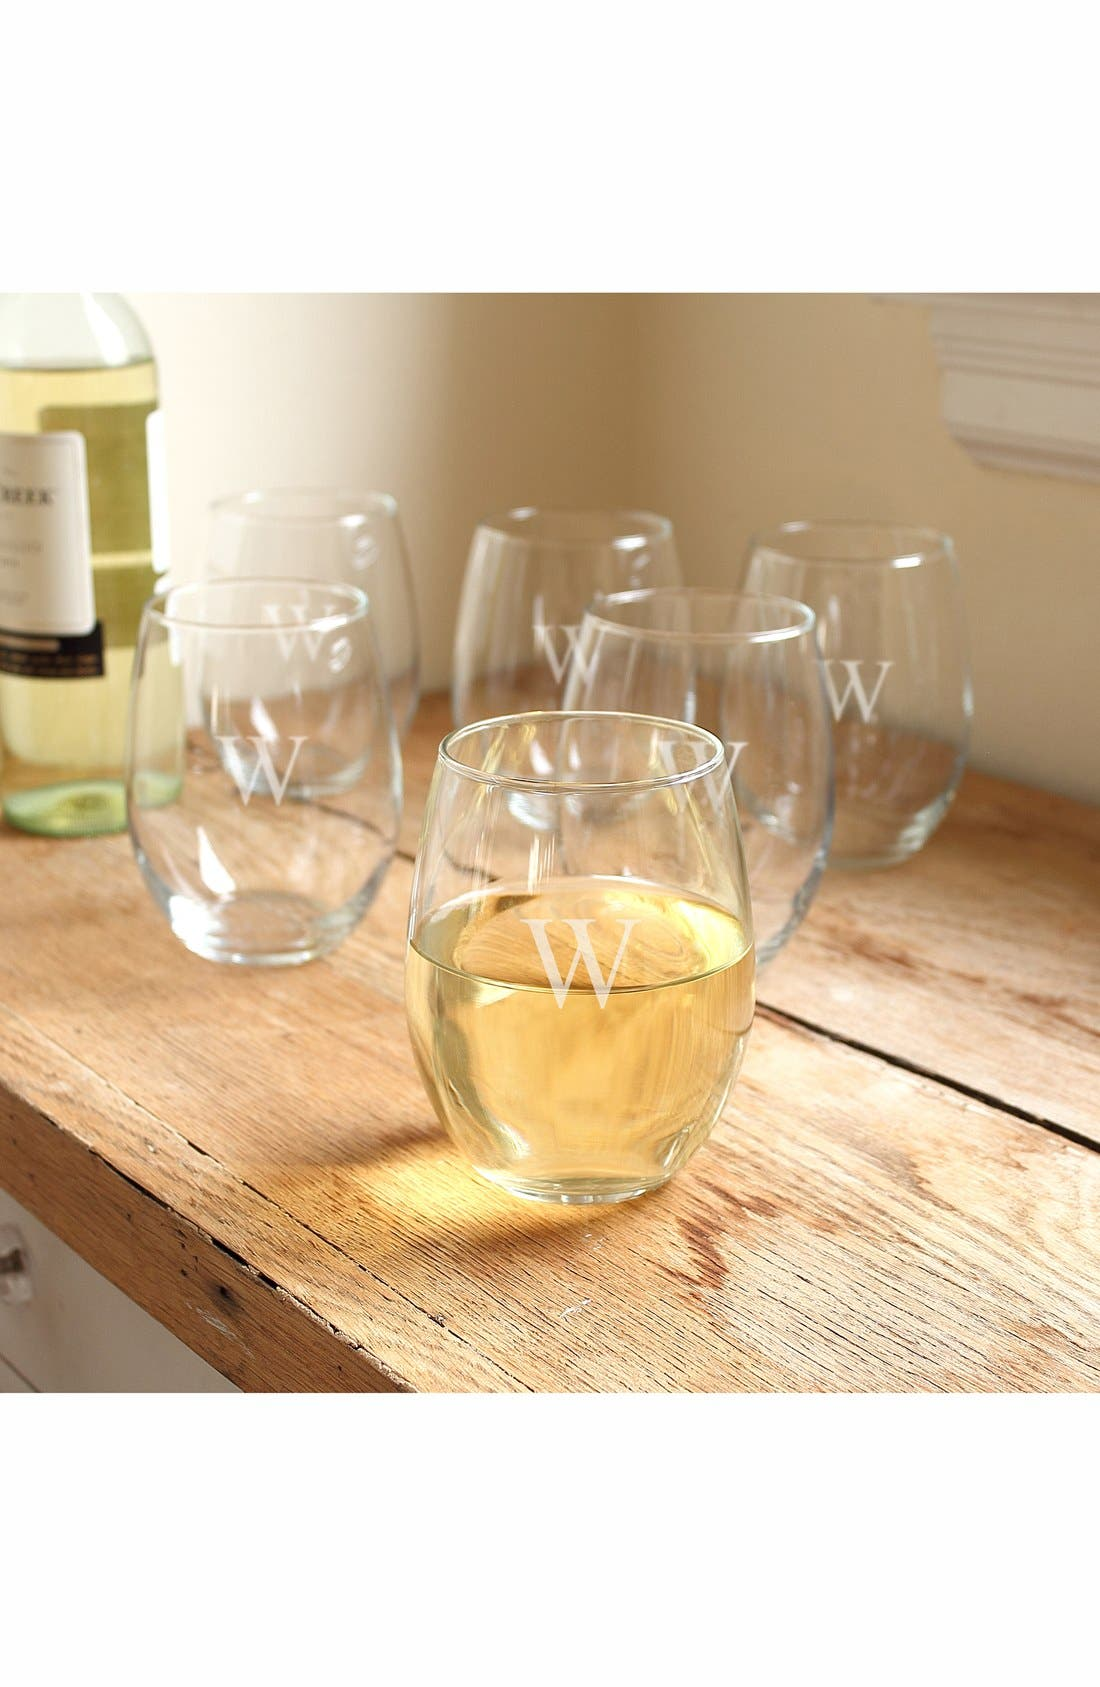 Main Image - Cathy's Concepts Set of 6 Monogram Stemless Wine Glasses